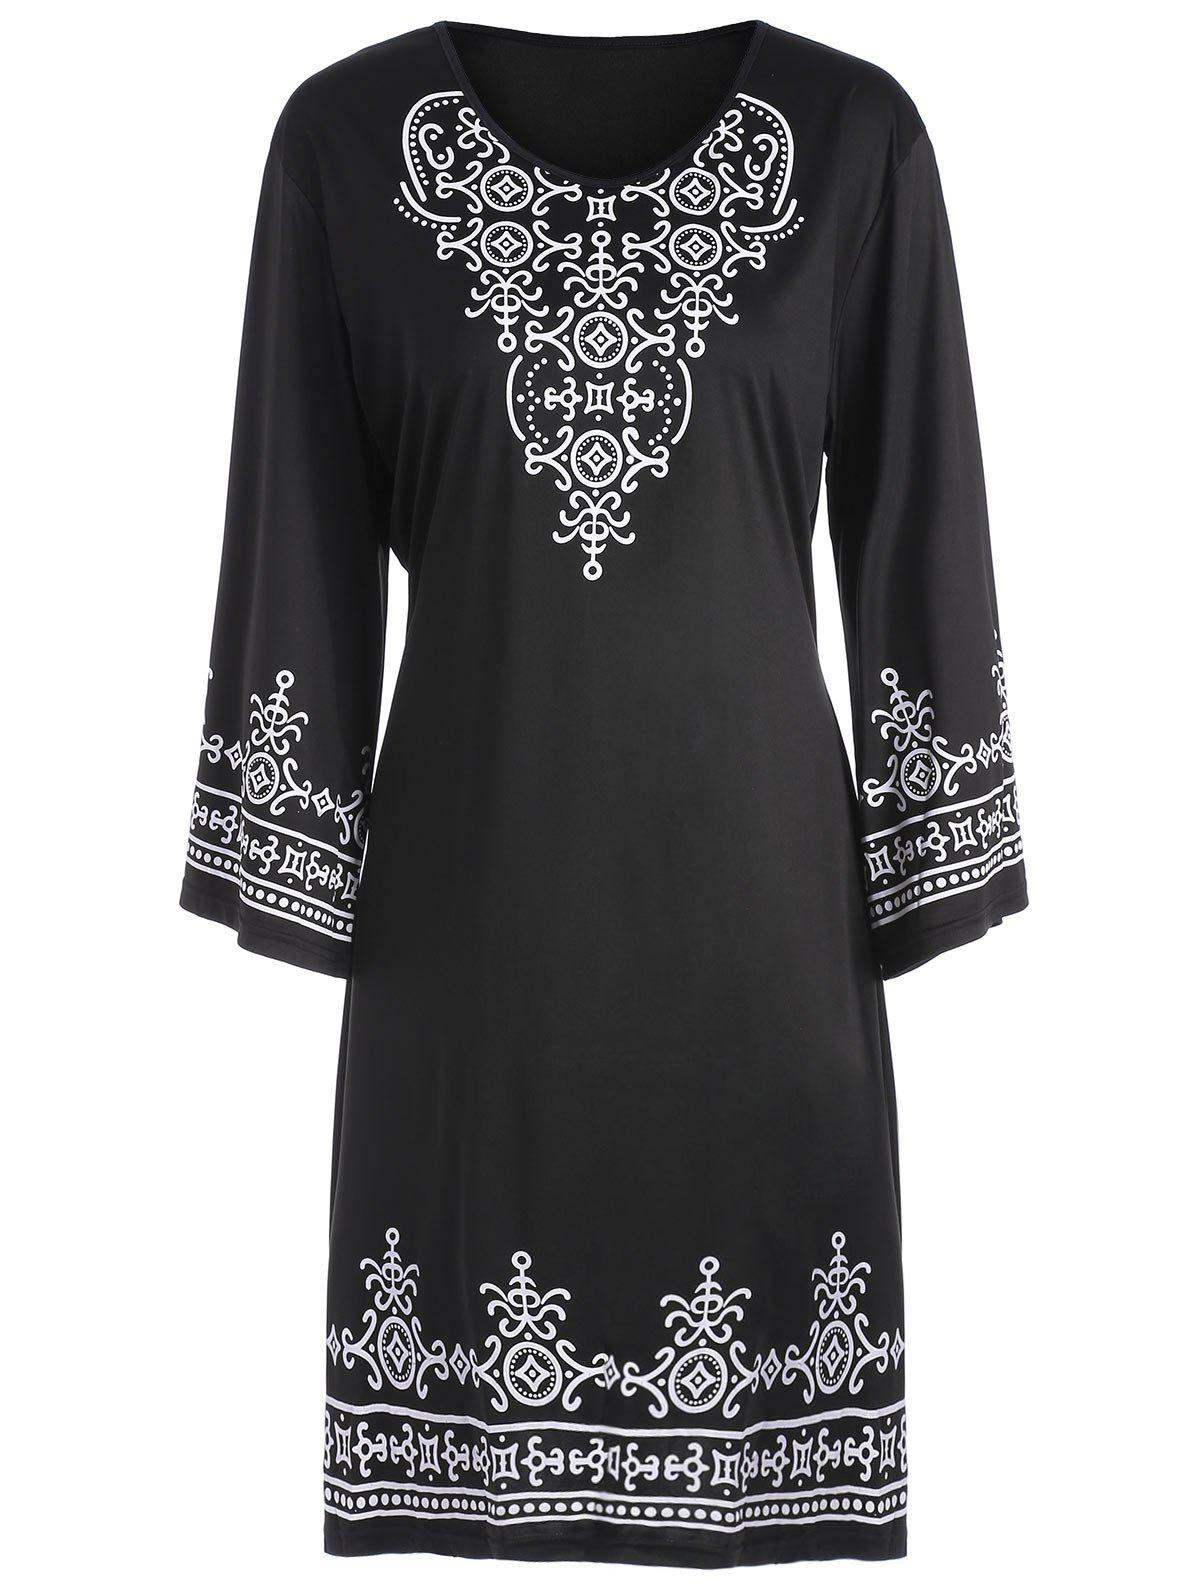 Tribal Print Plus Size T Shirt DressWOMEN<br><br>Size: 5XL; Color: BLACK; Style: Casual; Material: Polyester; Silhouette: Straight; Dresses Length: Knee-Length; Neckline: Round Collar; Sleeve Length: 3/4 Length Sleeves; Pattern Type: Tribal Print; With Belt: No; Season: Summer; Weight: 0.2500kg; Package Contents: 1 x Dress;